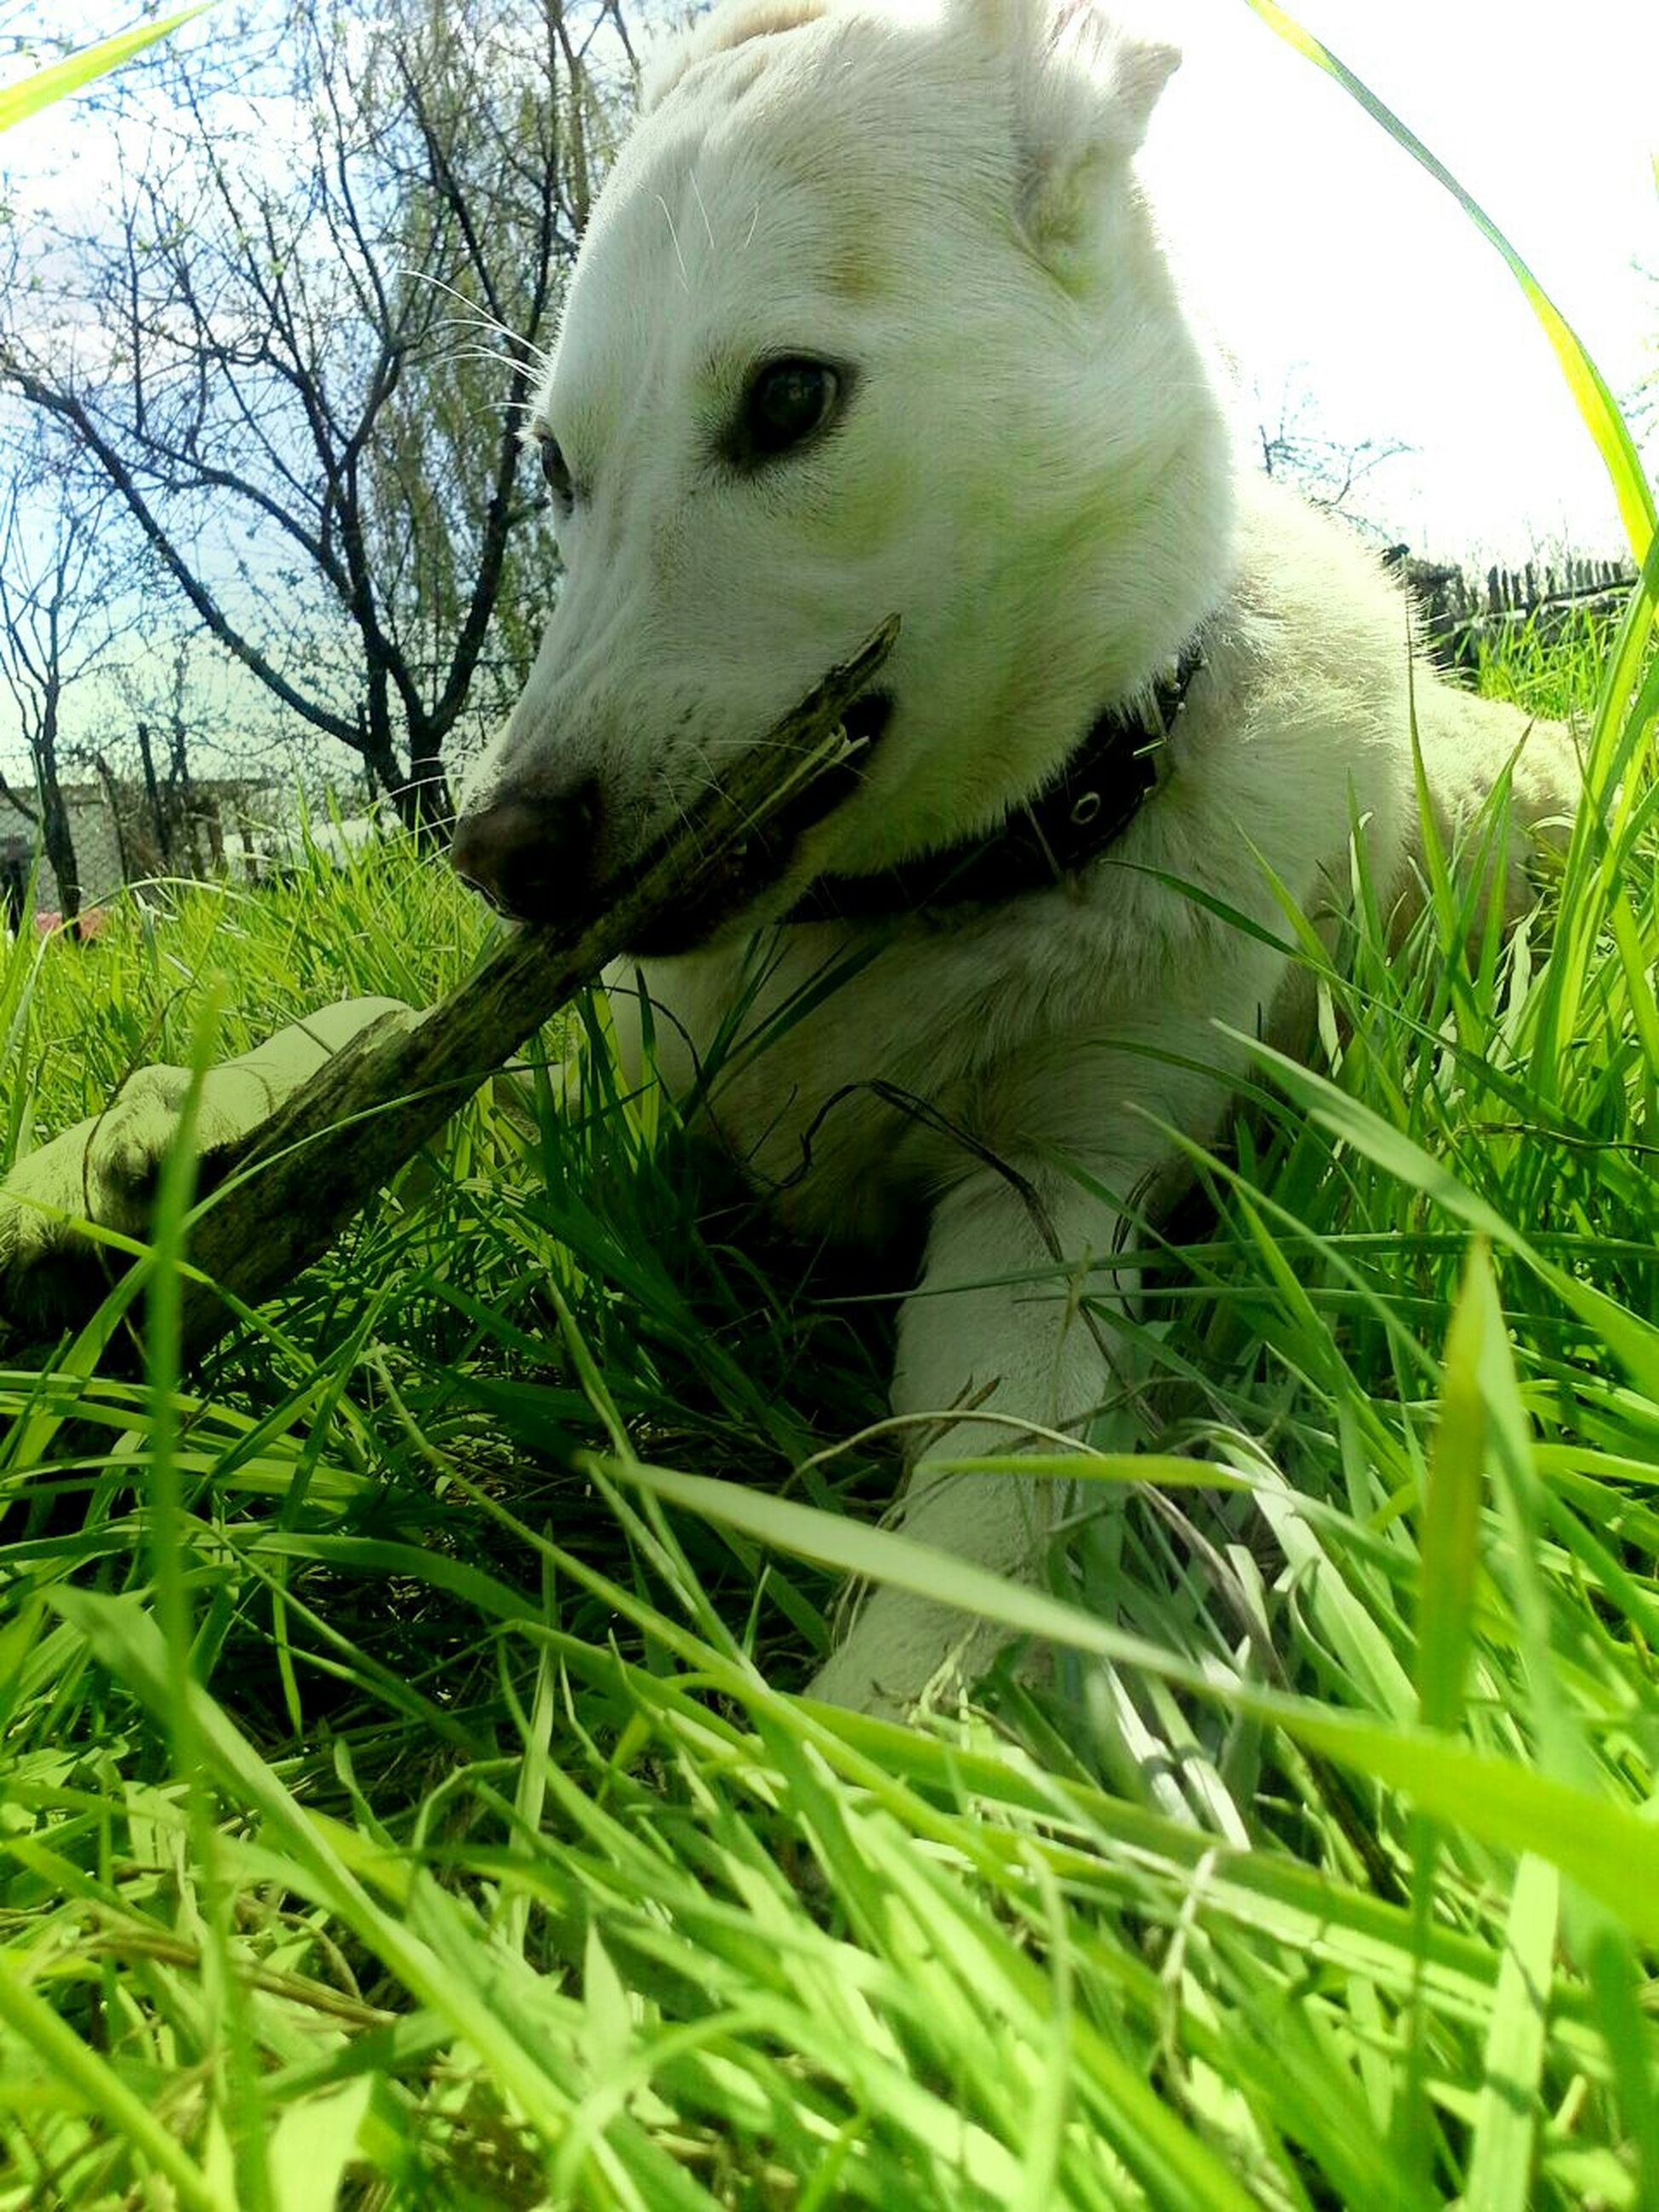 animal themes, one animal, grass, domestic animals, mammal, close-up, field, green color, animal head, pets, grassy, animal body part, dog, nature, growth, white color, no people, day, wildlife, outdoors